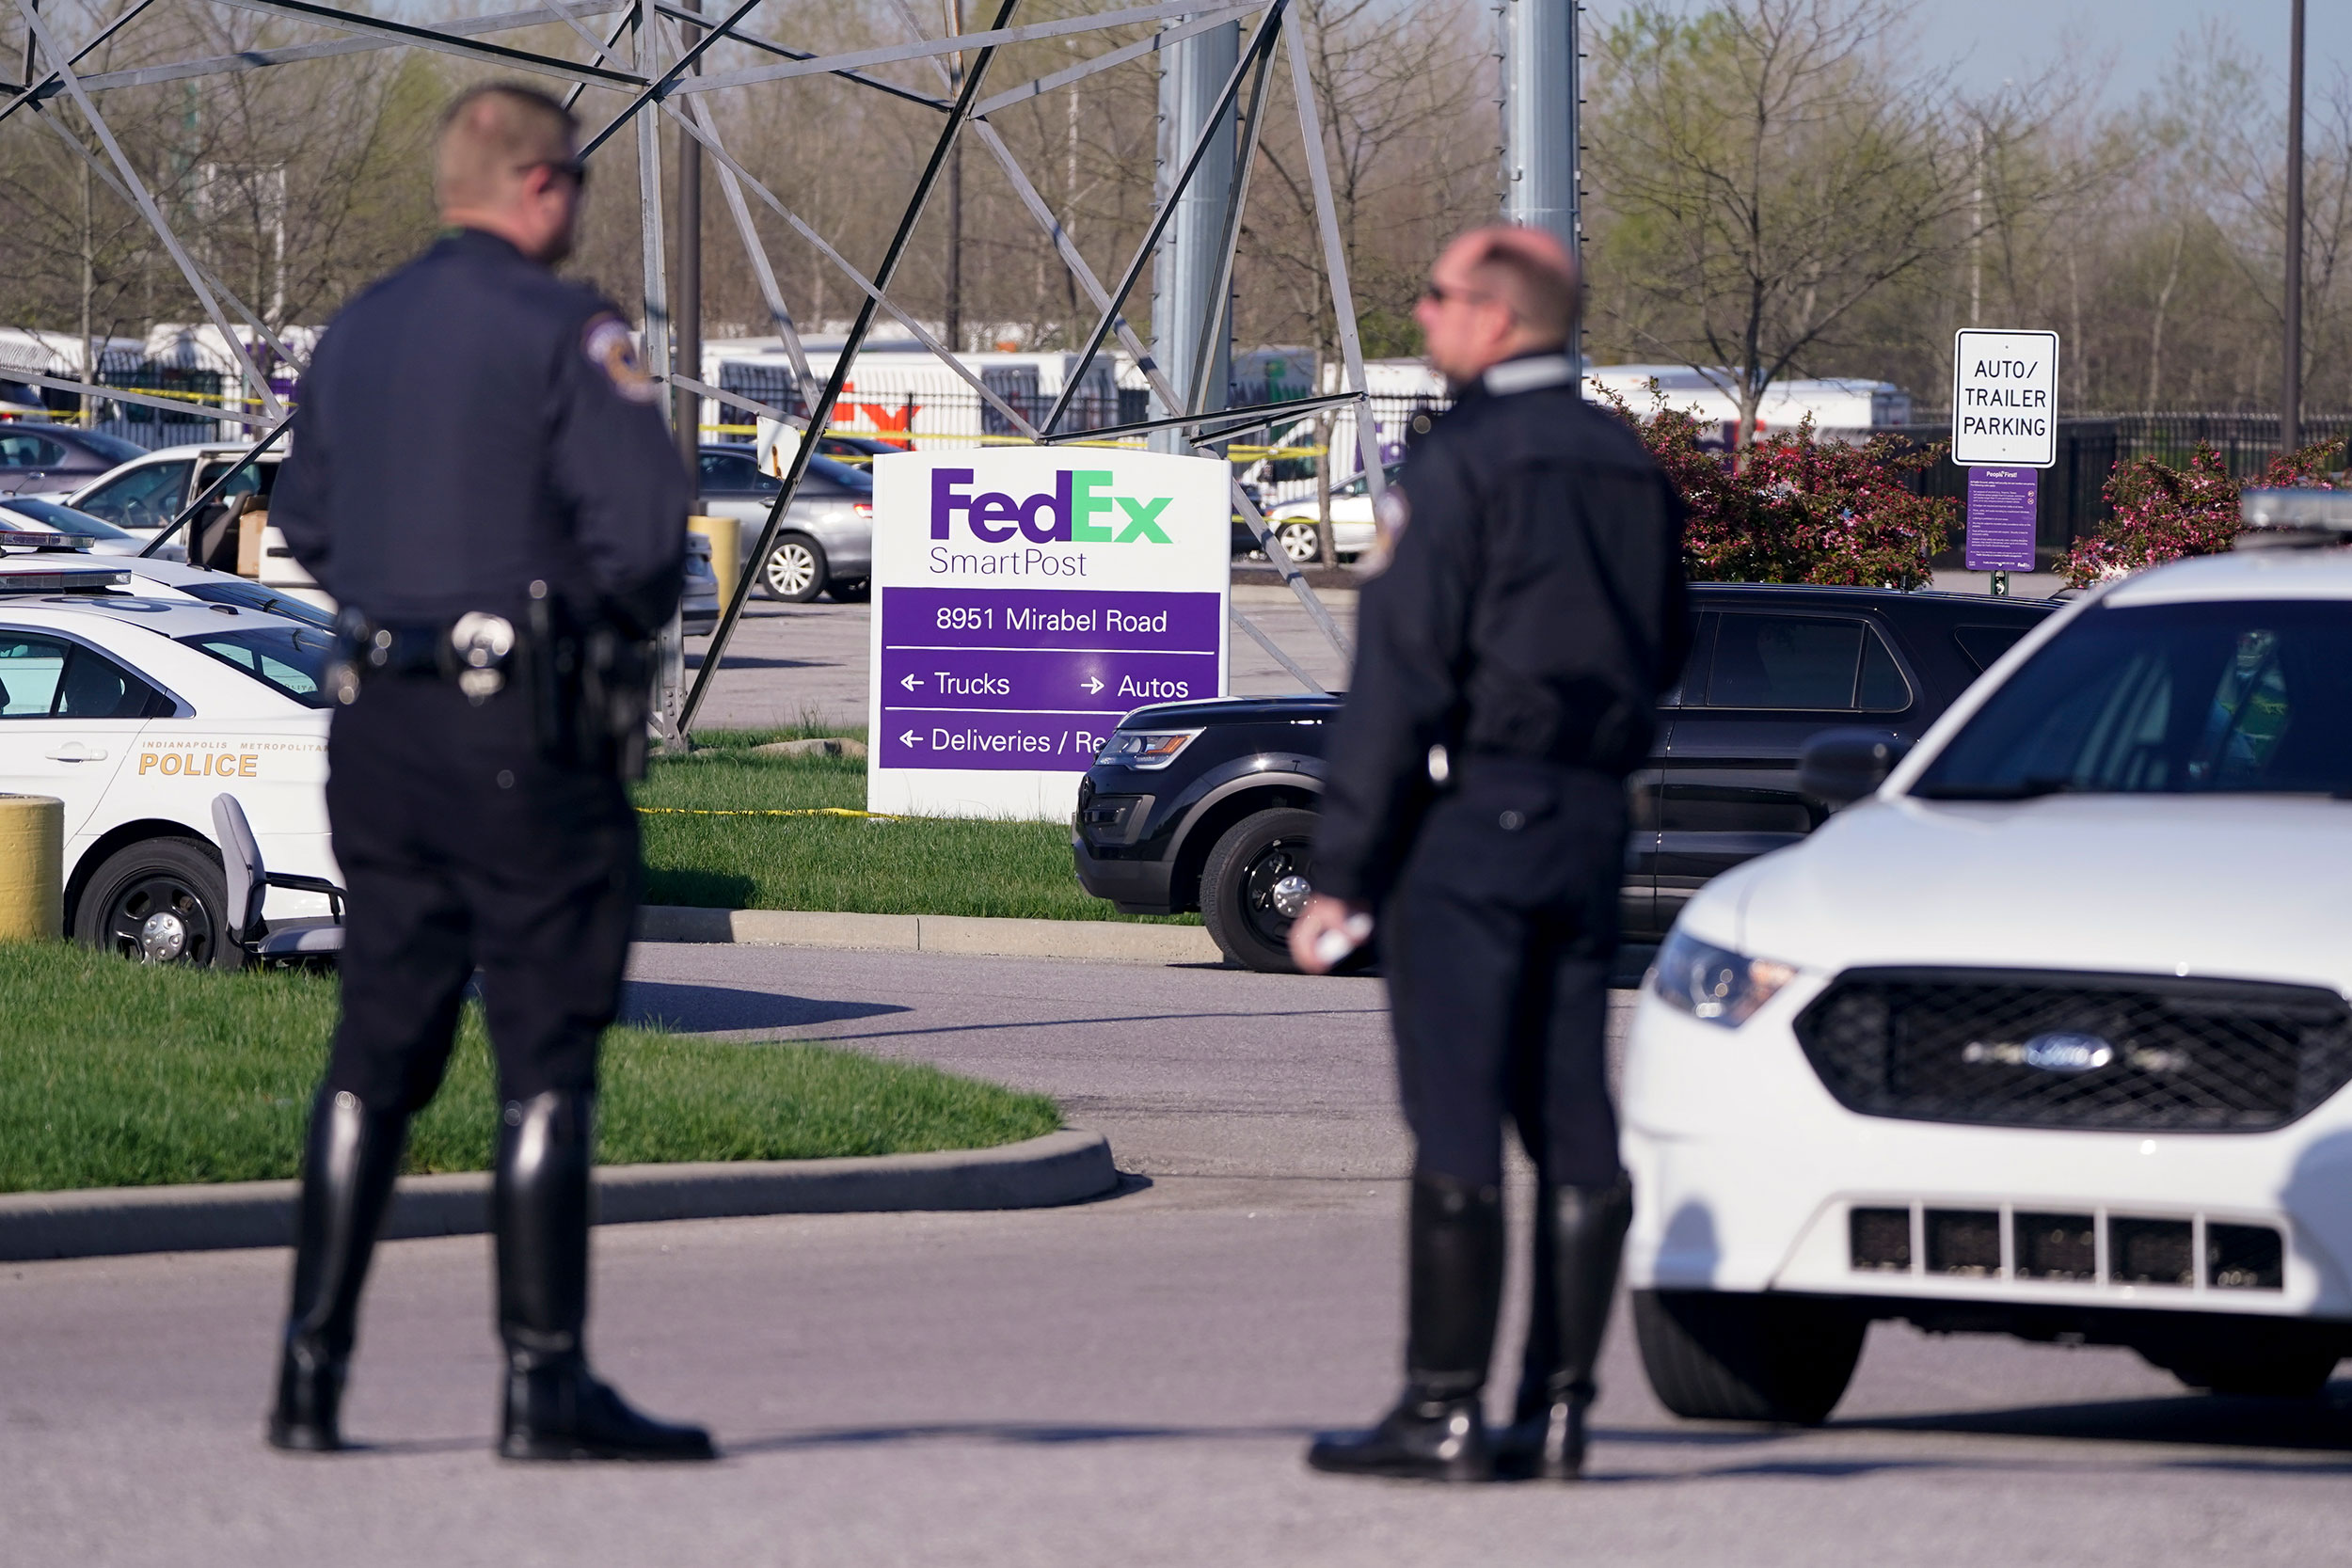 Indianapolis was already seeing a spike in homicides when a gunman killed 8 at a FedEx facility